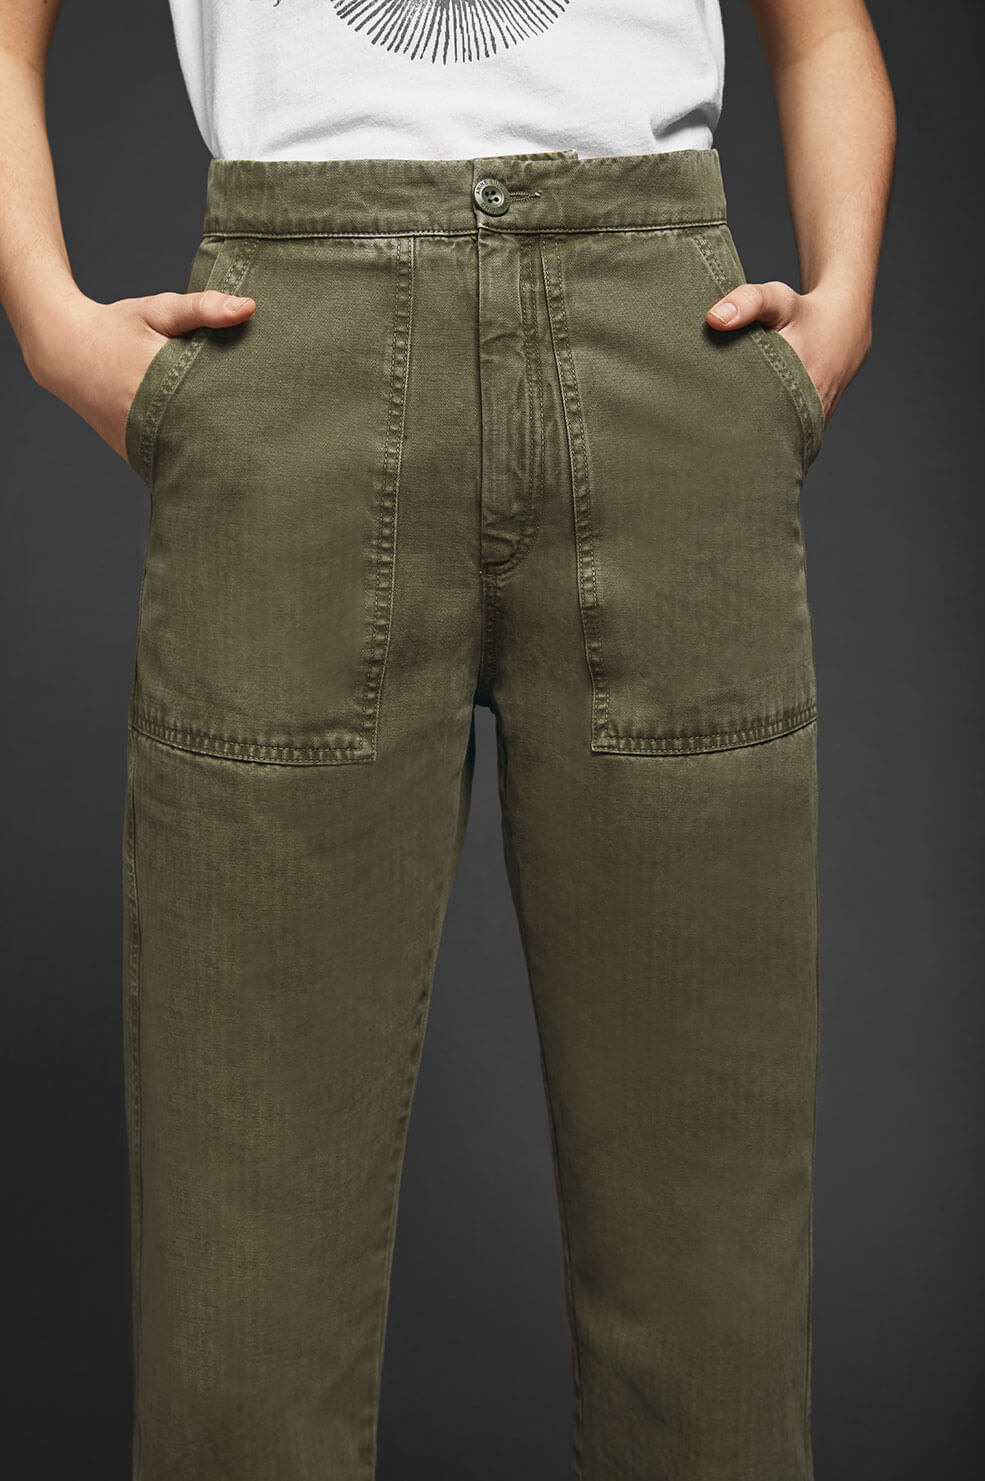 ANINE BING Scout Military Trouser - Military Green